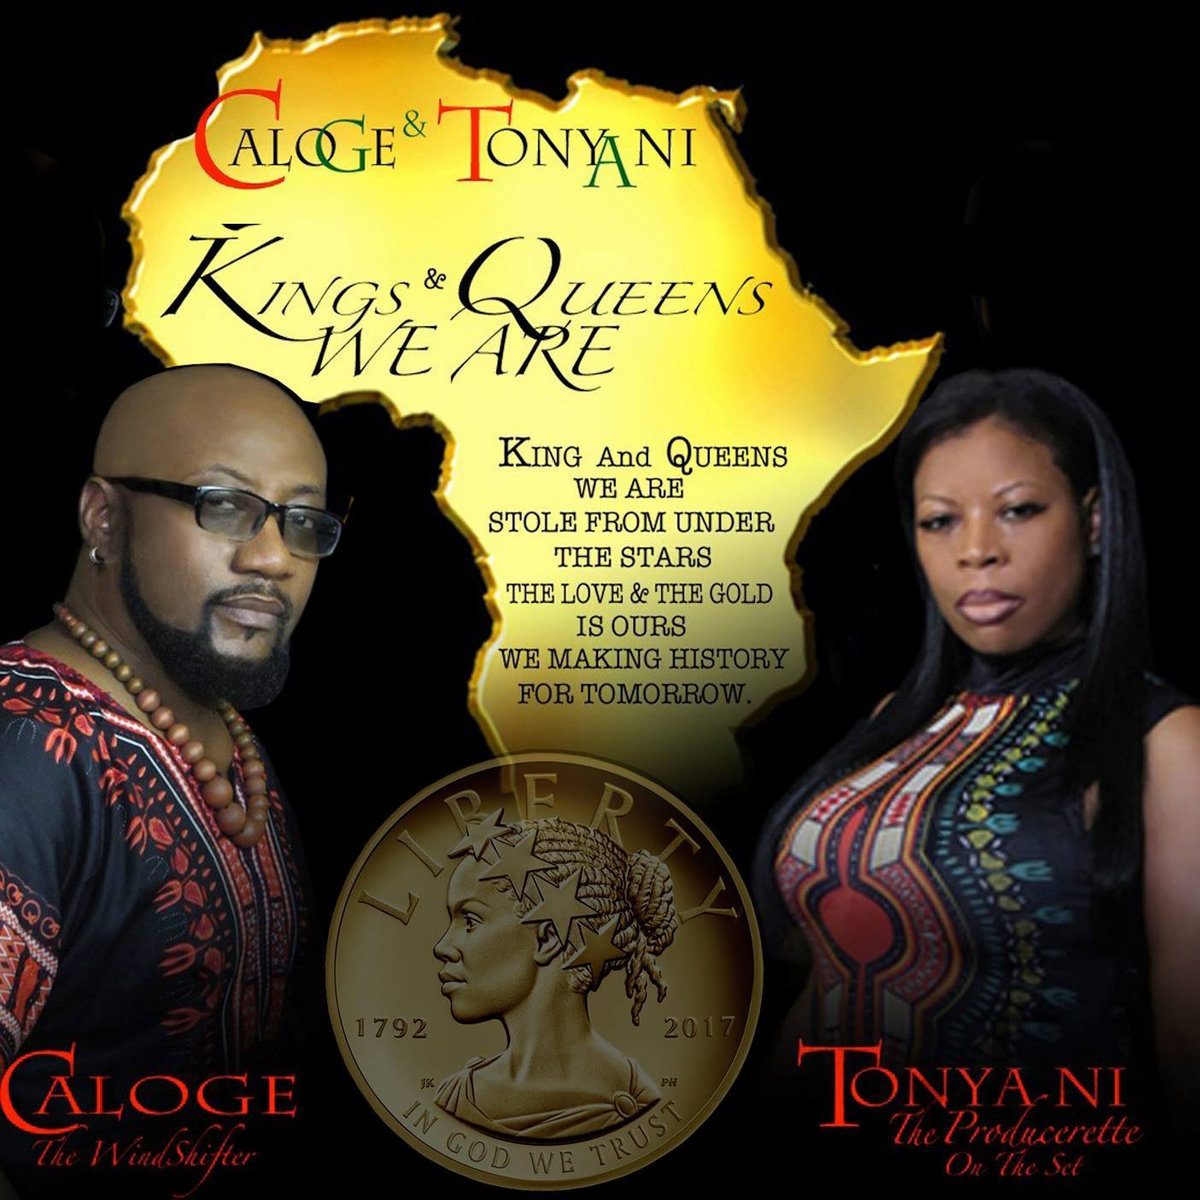 Kings and Queens We Are by Caloge & Tonya Ni